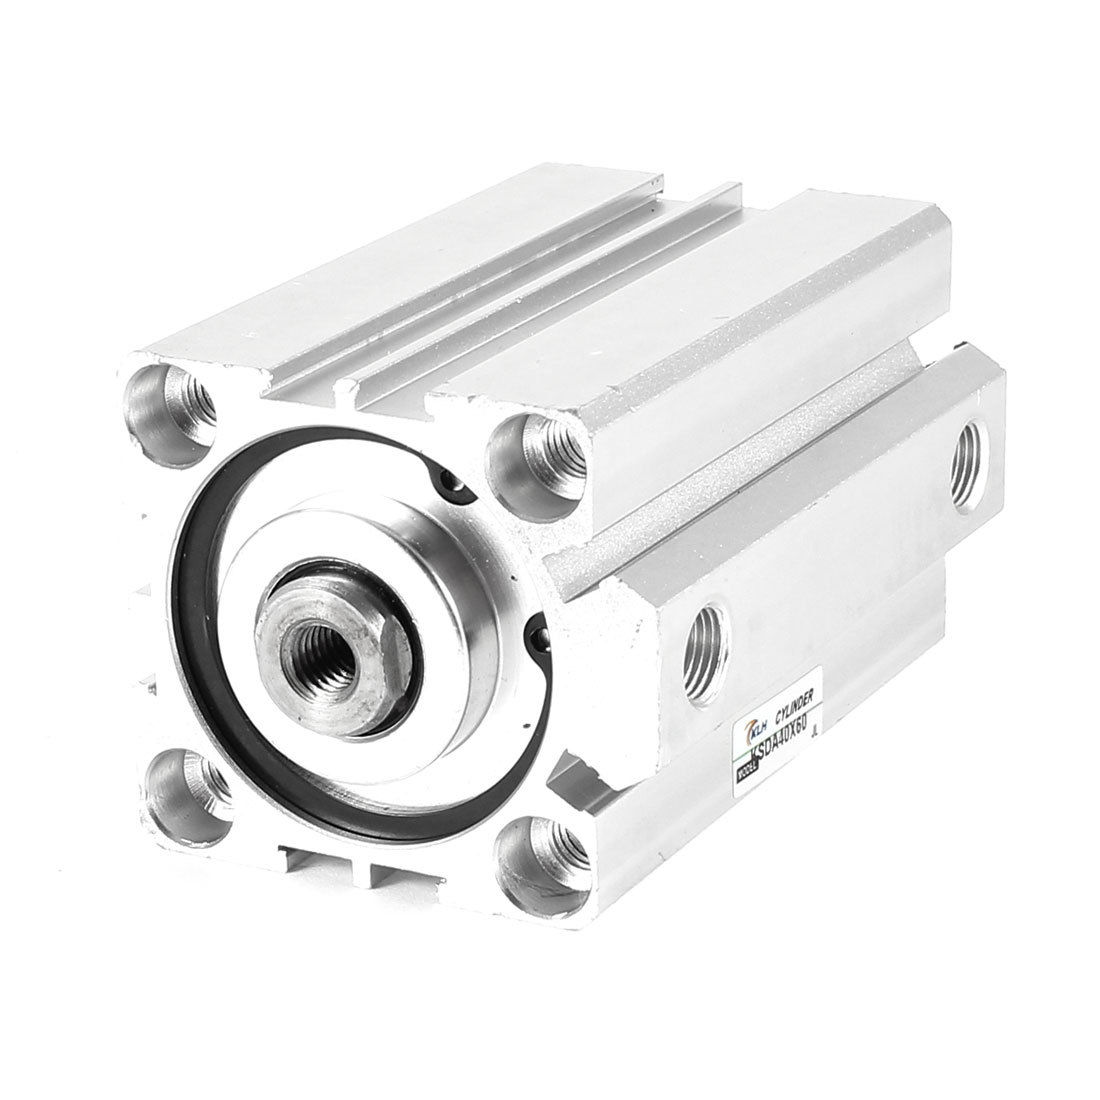 1 Pcs 63mm Bore 45mm Stroke Stainless steel Pneumatic Air Cylinder SDA63-45<br>